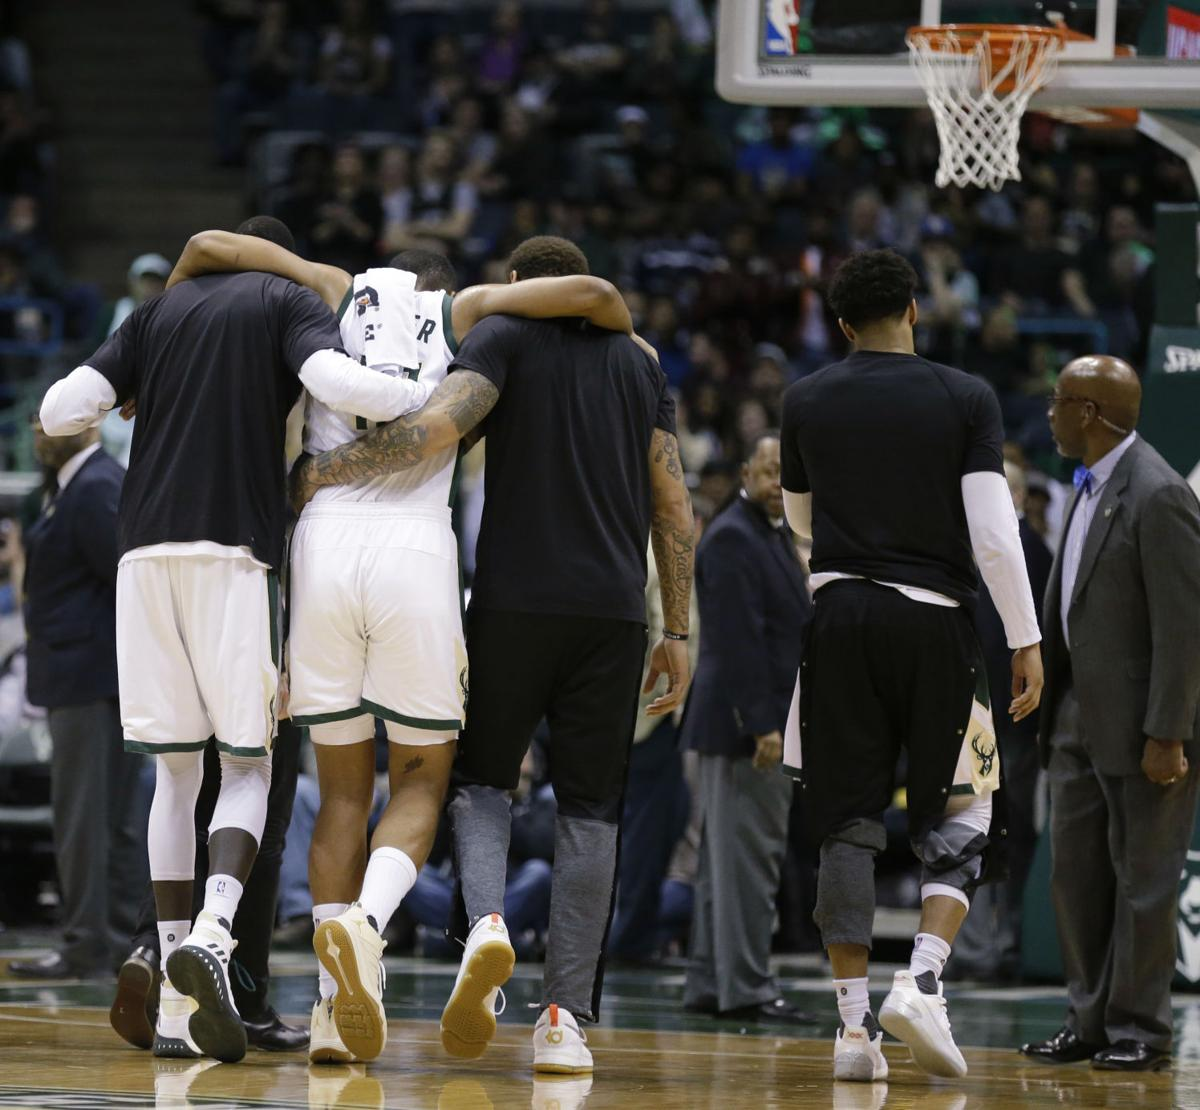 Jabari Parker carried off court knee injury, AP photo